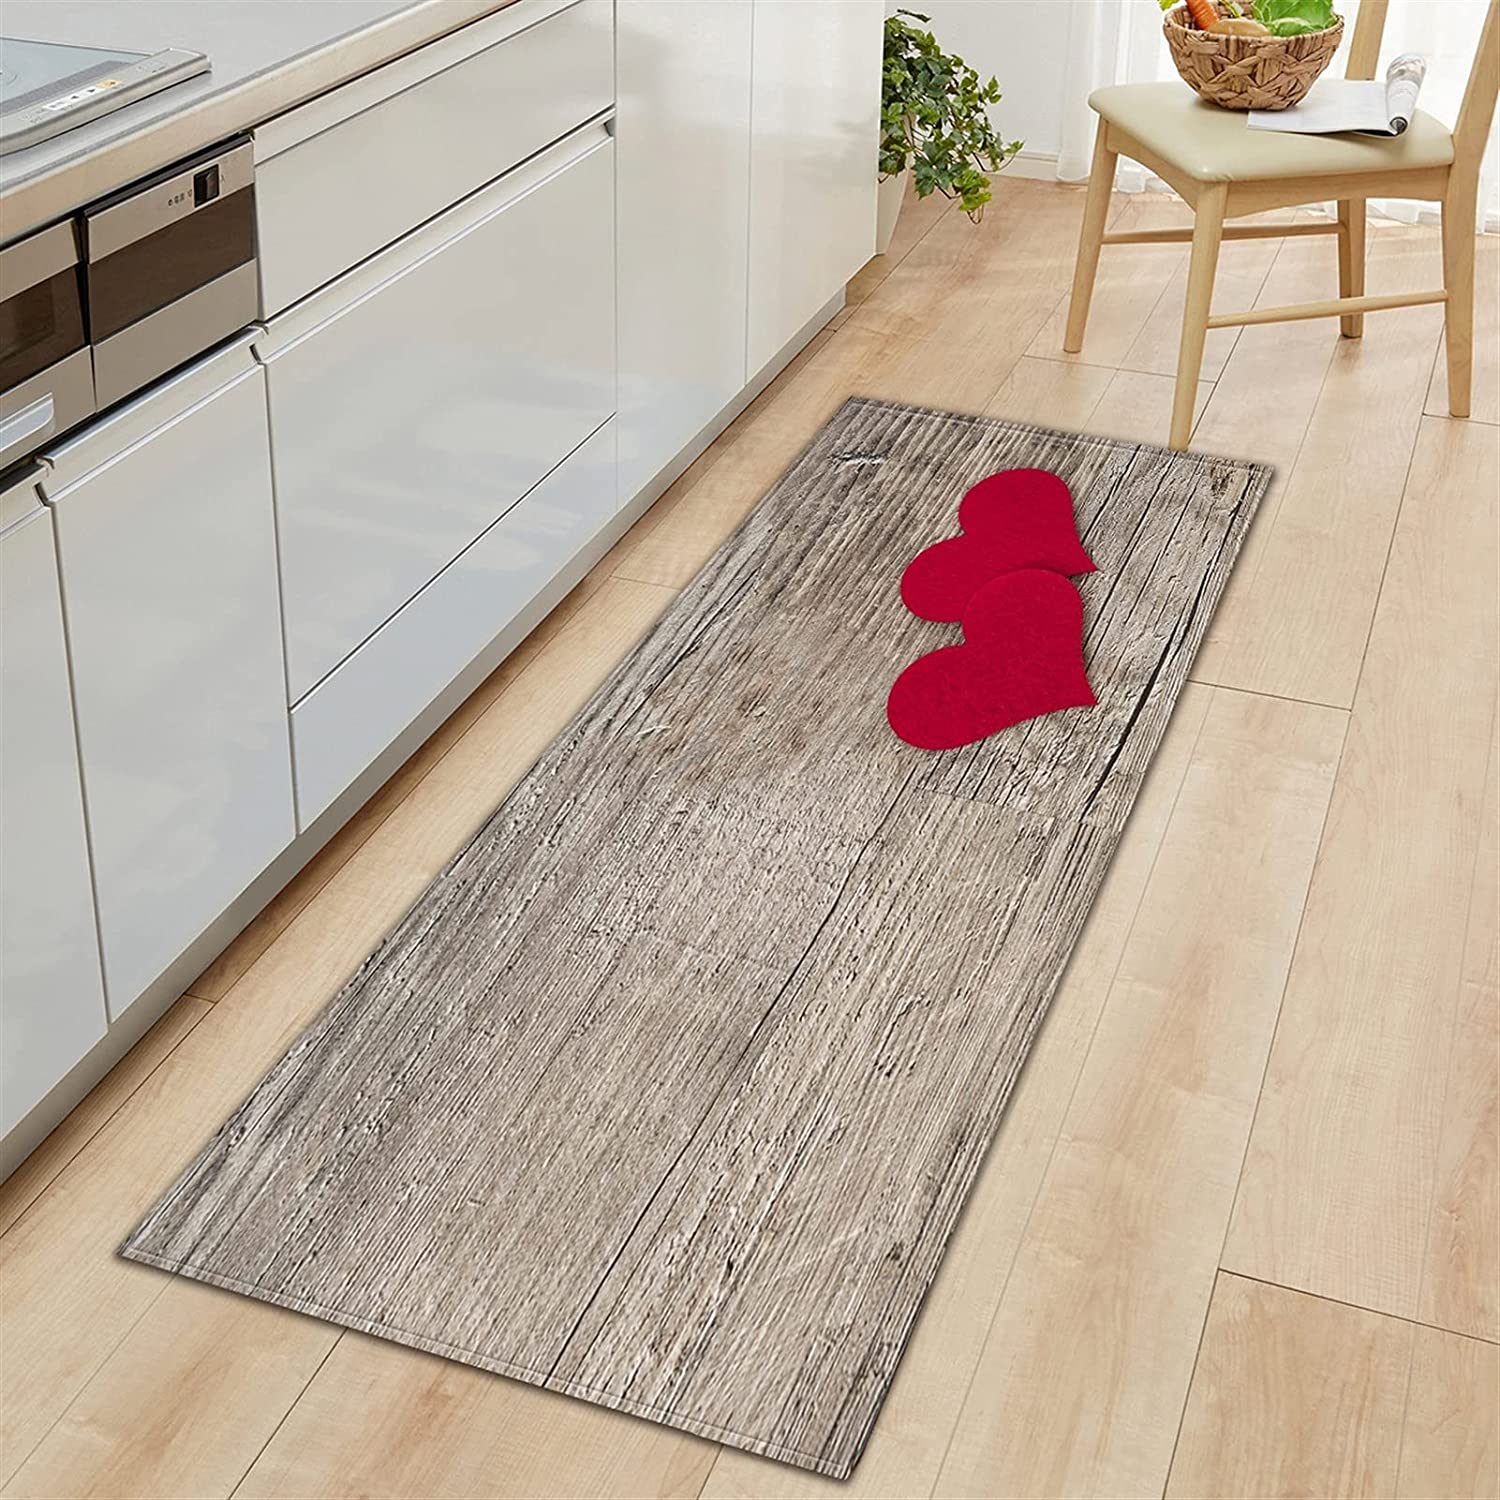 LUBINGT Kitchen Rug Home Floor Cheap super special price M 3D Door SEAL limited product Mat Printed